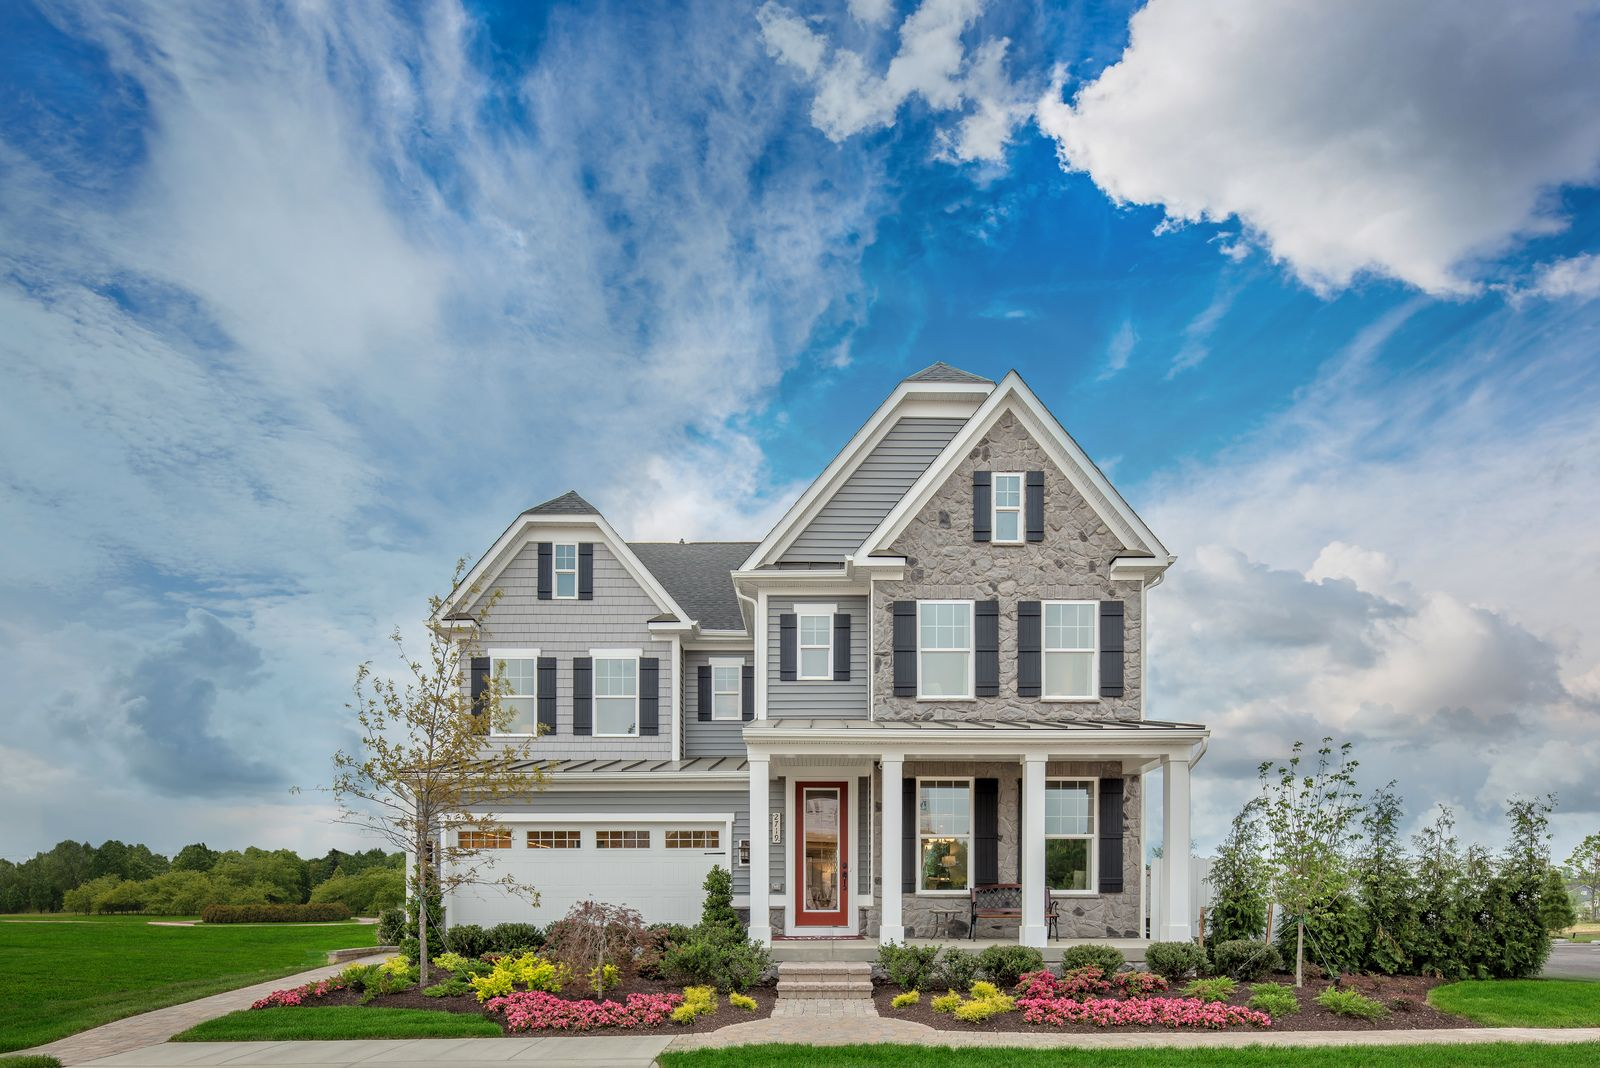 Discover Luxury Living at Turf Valley - Decorated Model Now Open:Our grand single-family homes and first-floor owner's suite homes are now selling, with more included features than you ever imagined.Schedule a visit today!